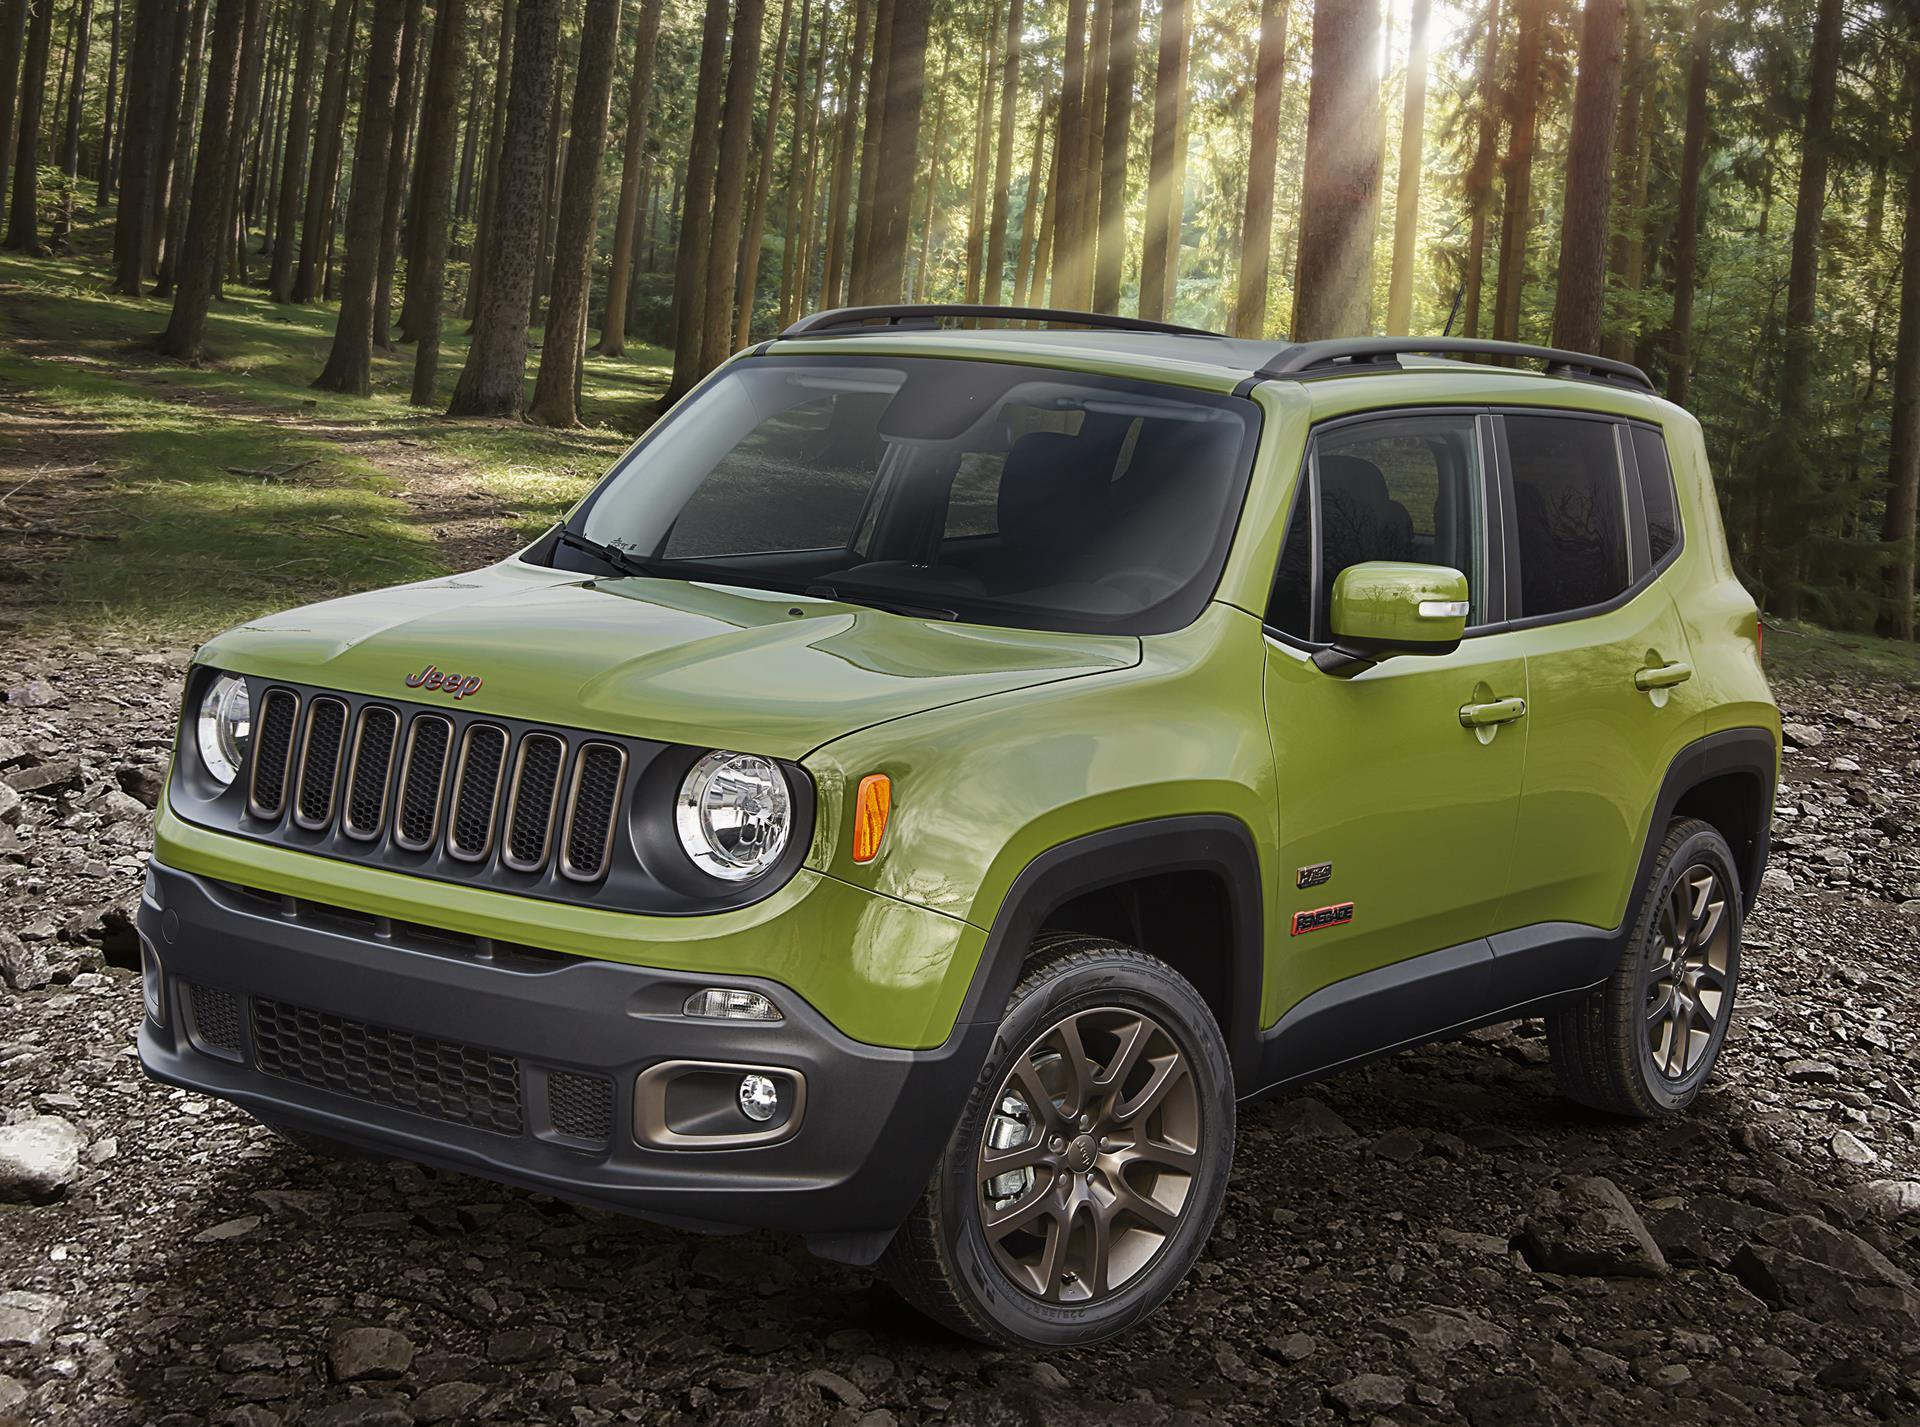 2016 jeep renegade 75th anniversary edition technical specifications and data engine. Black Bedroom Furniture Sets. Home Design Ideas